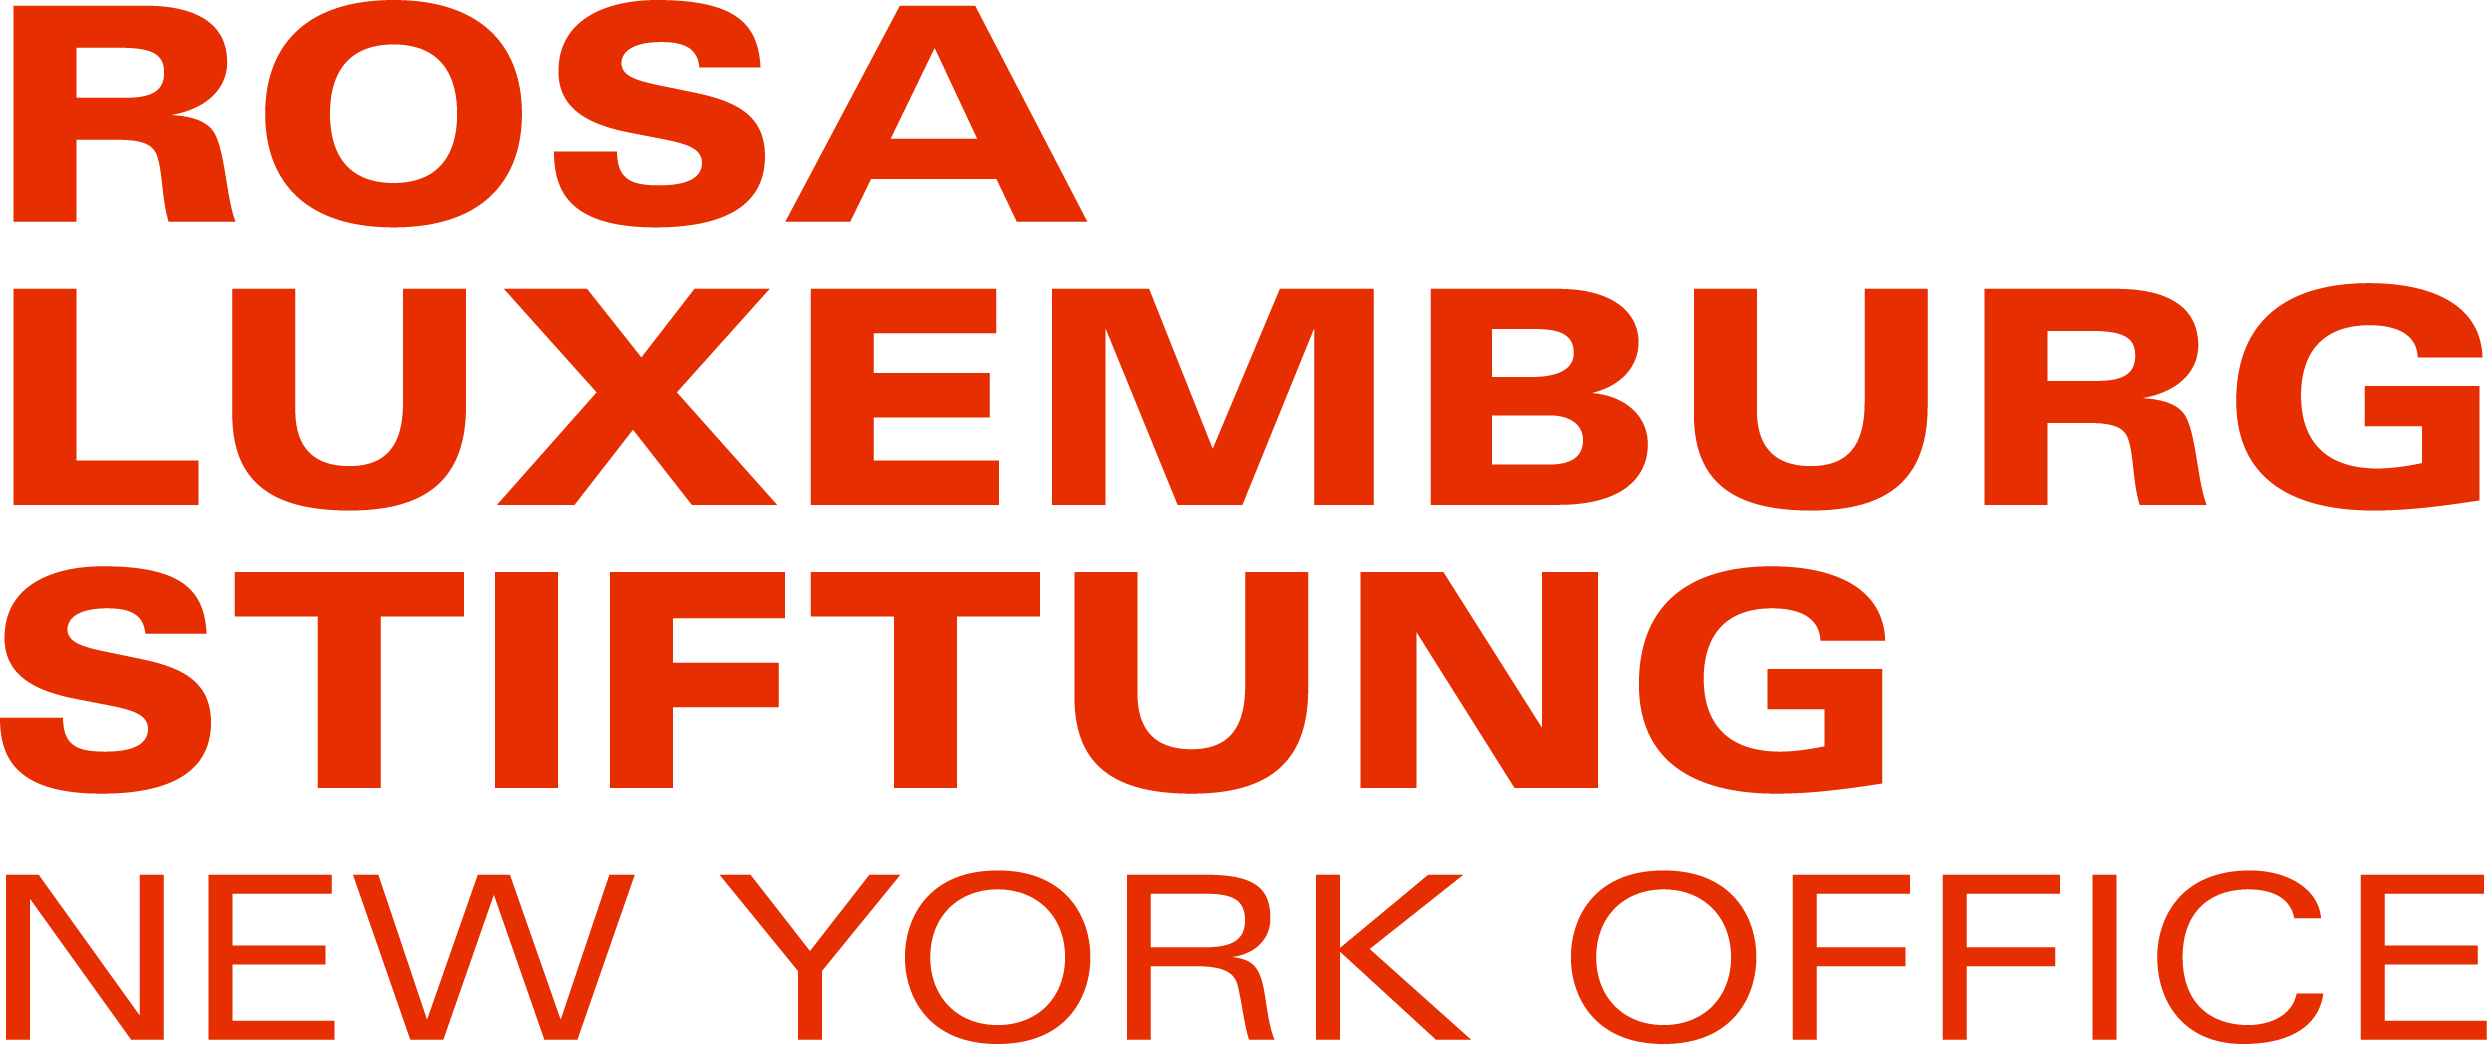 Rosa Luxemburg Stiftung — New York Office